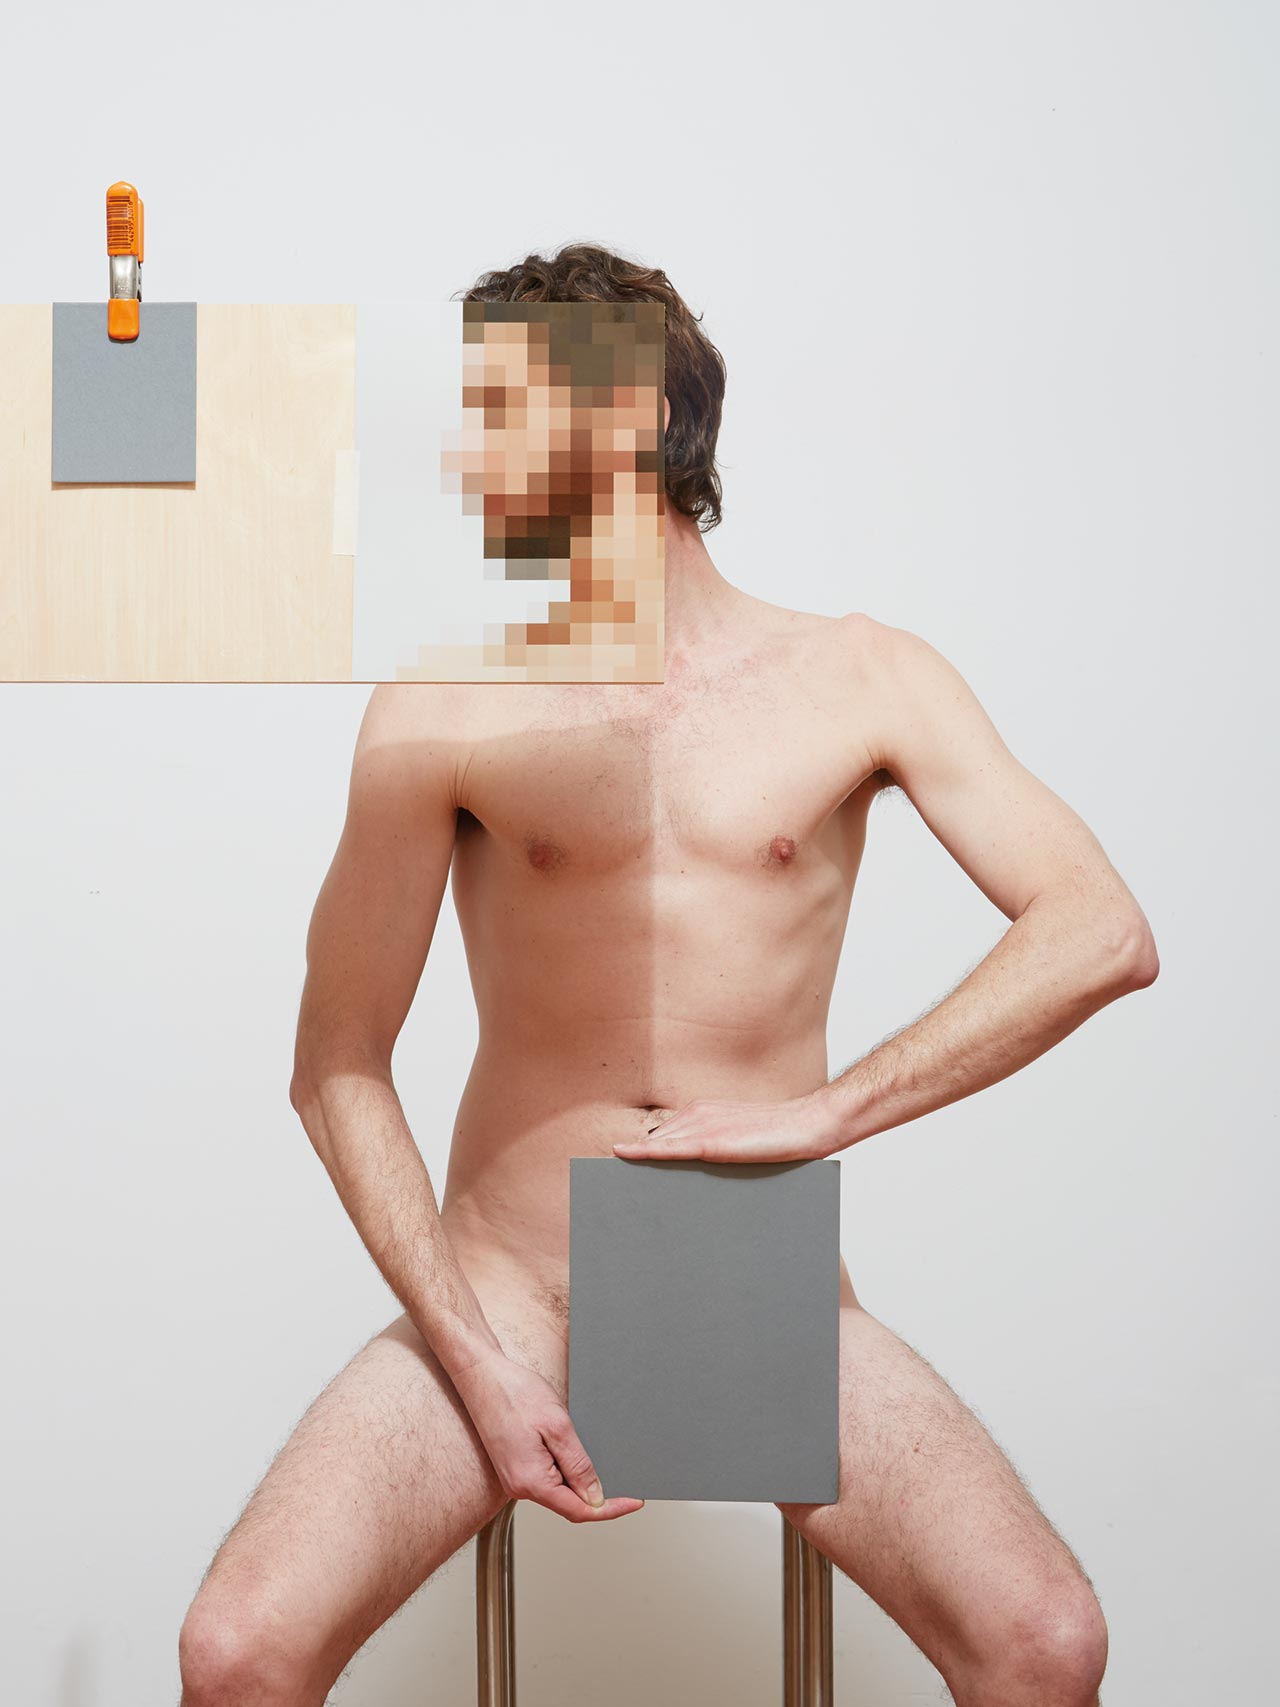 Photo by Bill Durgin,from UNLOCKED © Atopos cvc, Athens.